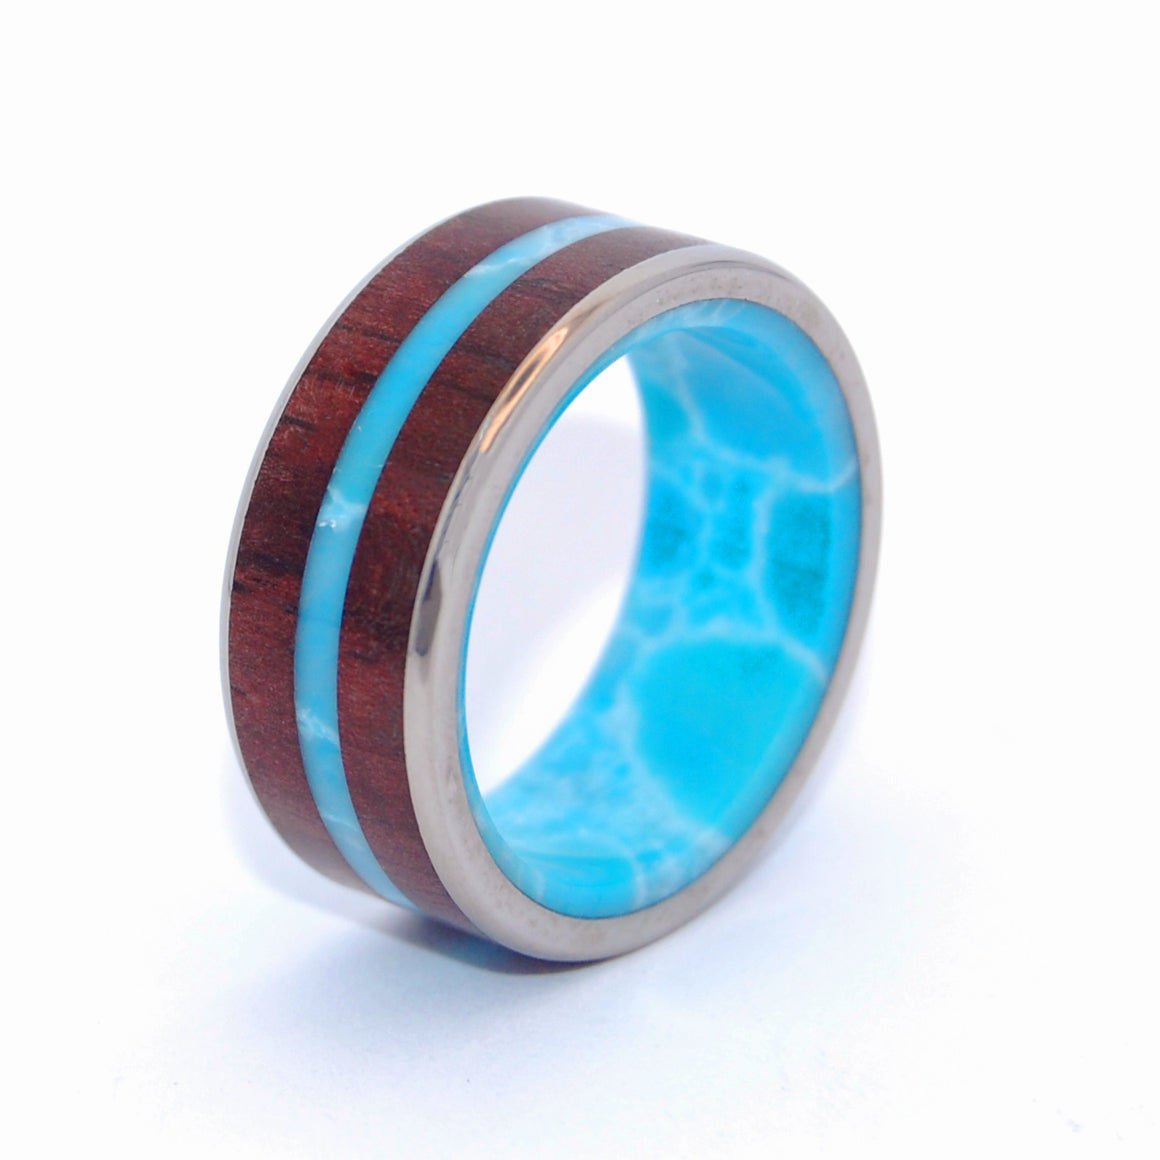 MAN FROM THE SEA | Cocobolo Wood & Dominican Larimar Stone Titanium Wedding Rings - Minter and Richter Designs